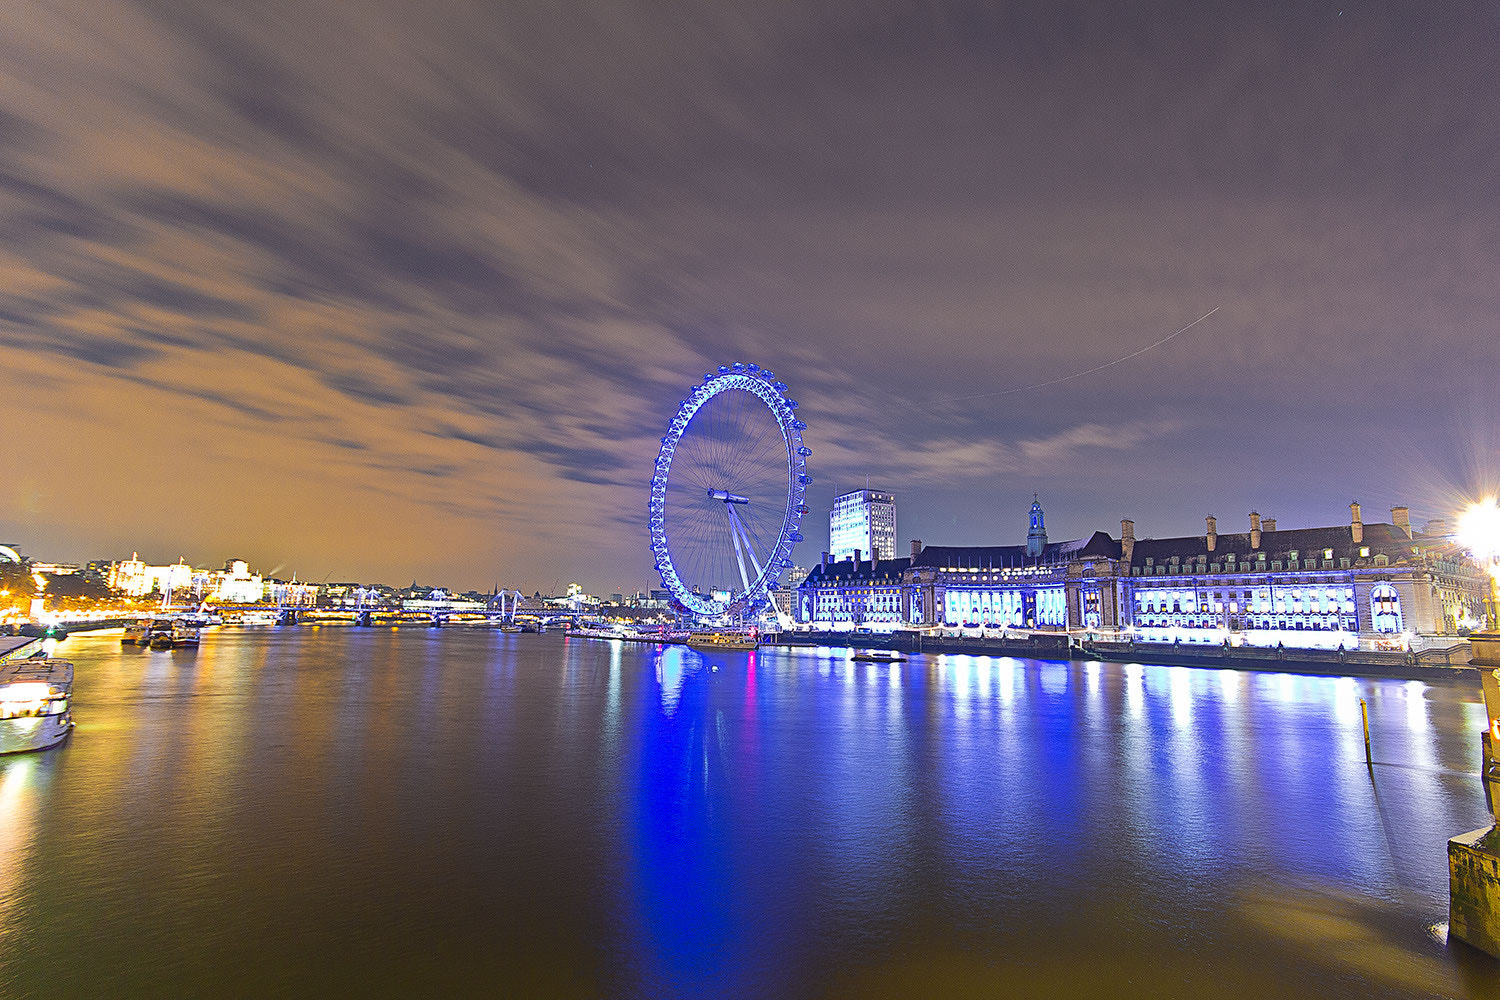 Photograph River Thames at night by Paulo Eduardo Canedo Nabas on 500px